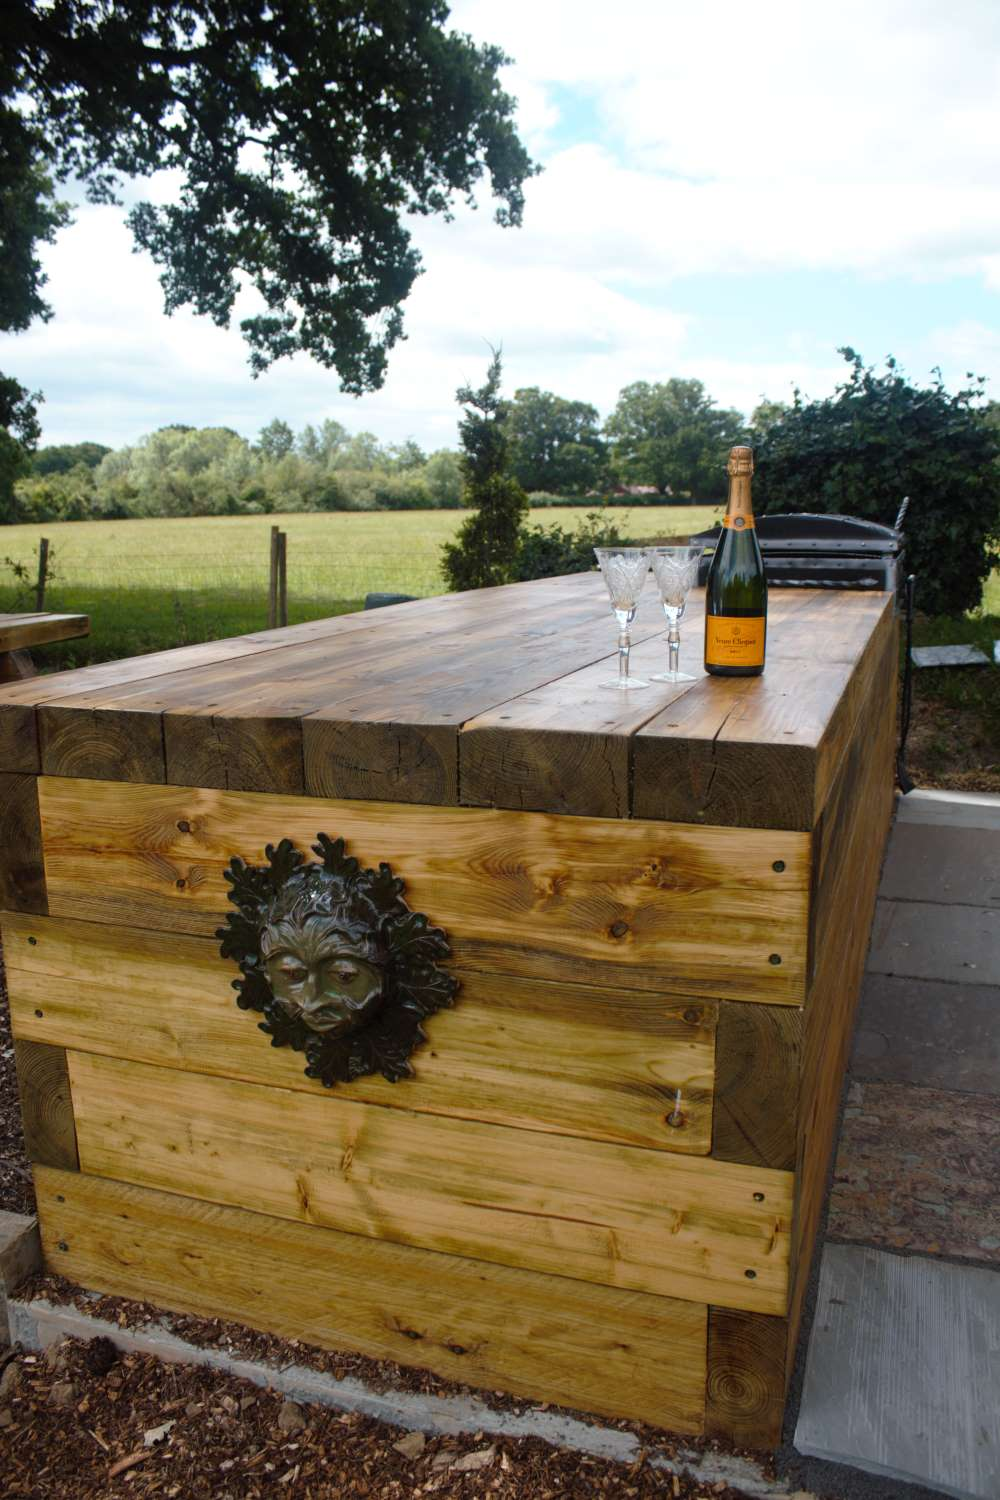 Bespoke Outdoors Living For Sustainable Quality Living - BSOL on Bespoke Outdoor Living id=13988